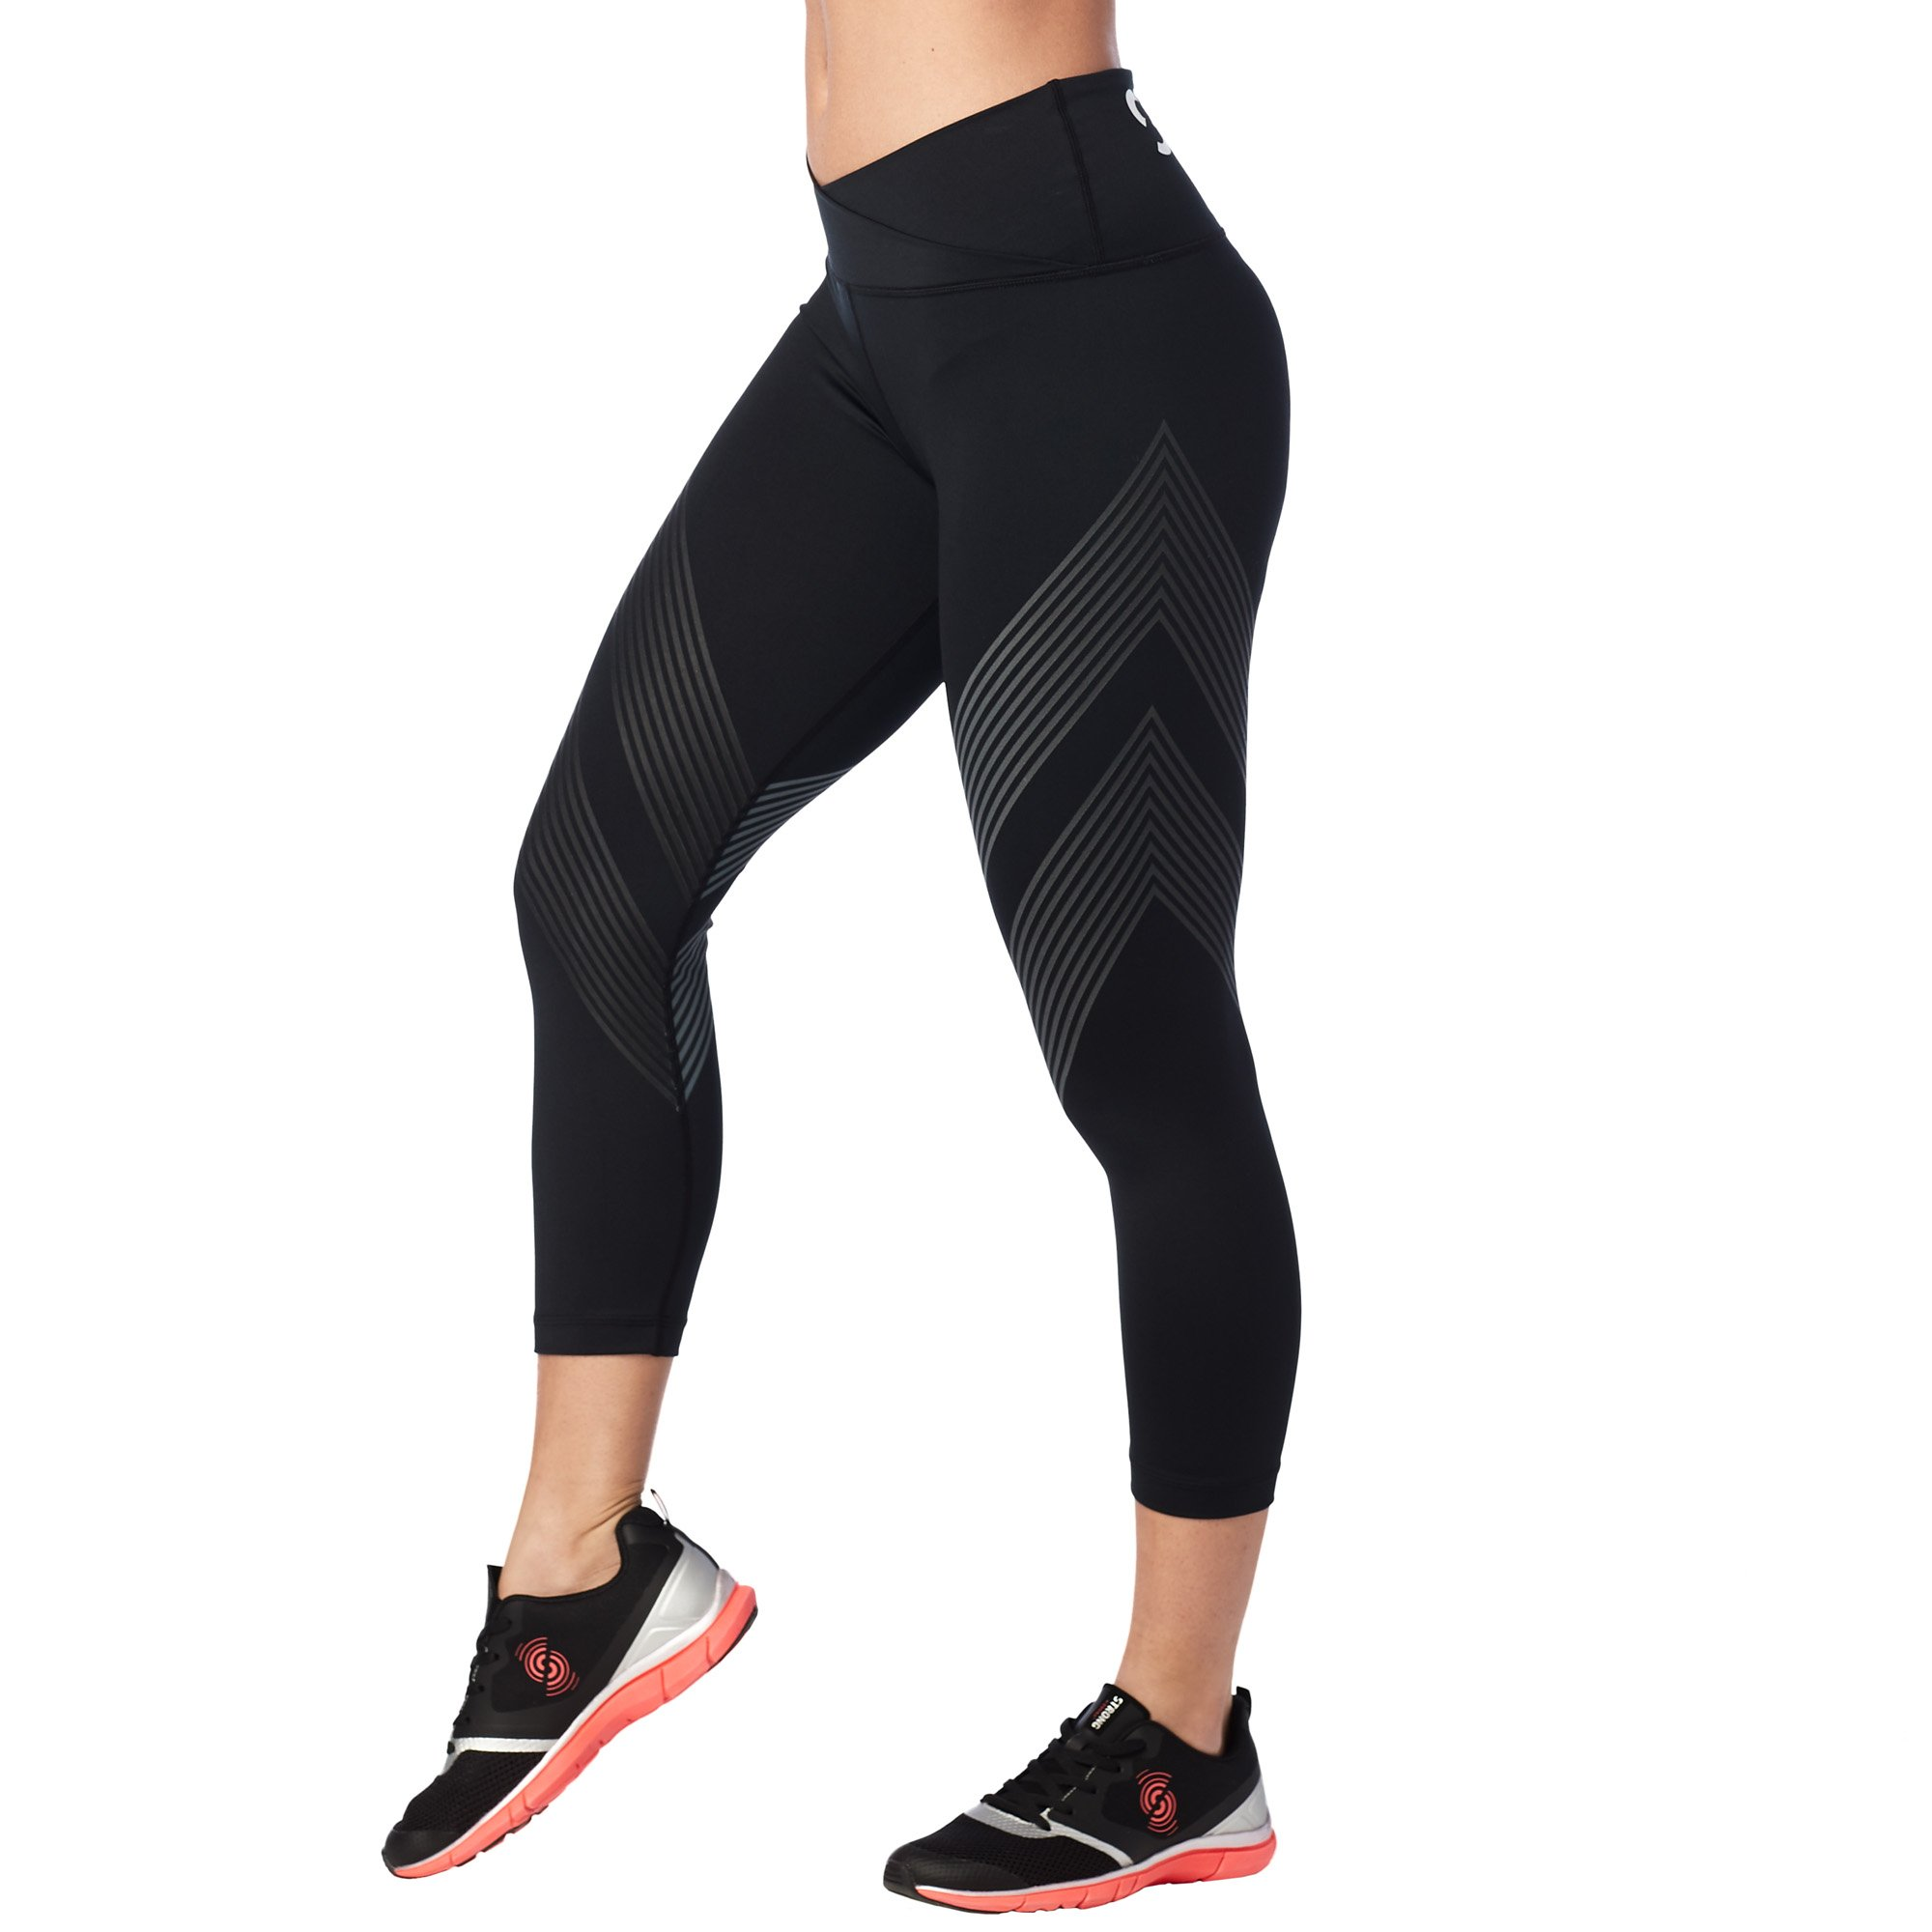 STRONG by Zumba Women's High Waisted Shaping Athletic Performance Cropped Workout Leggings with Compression